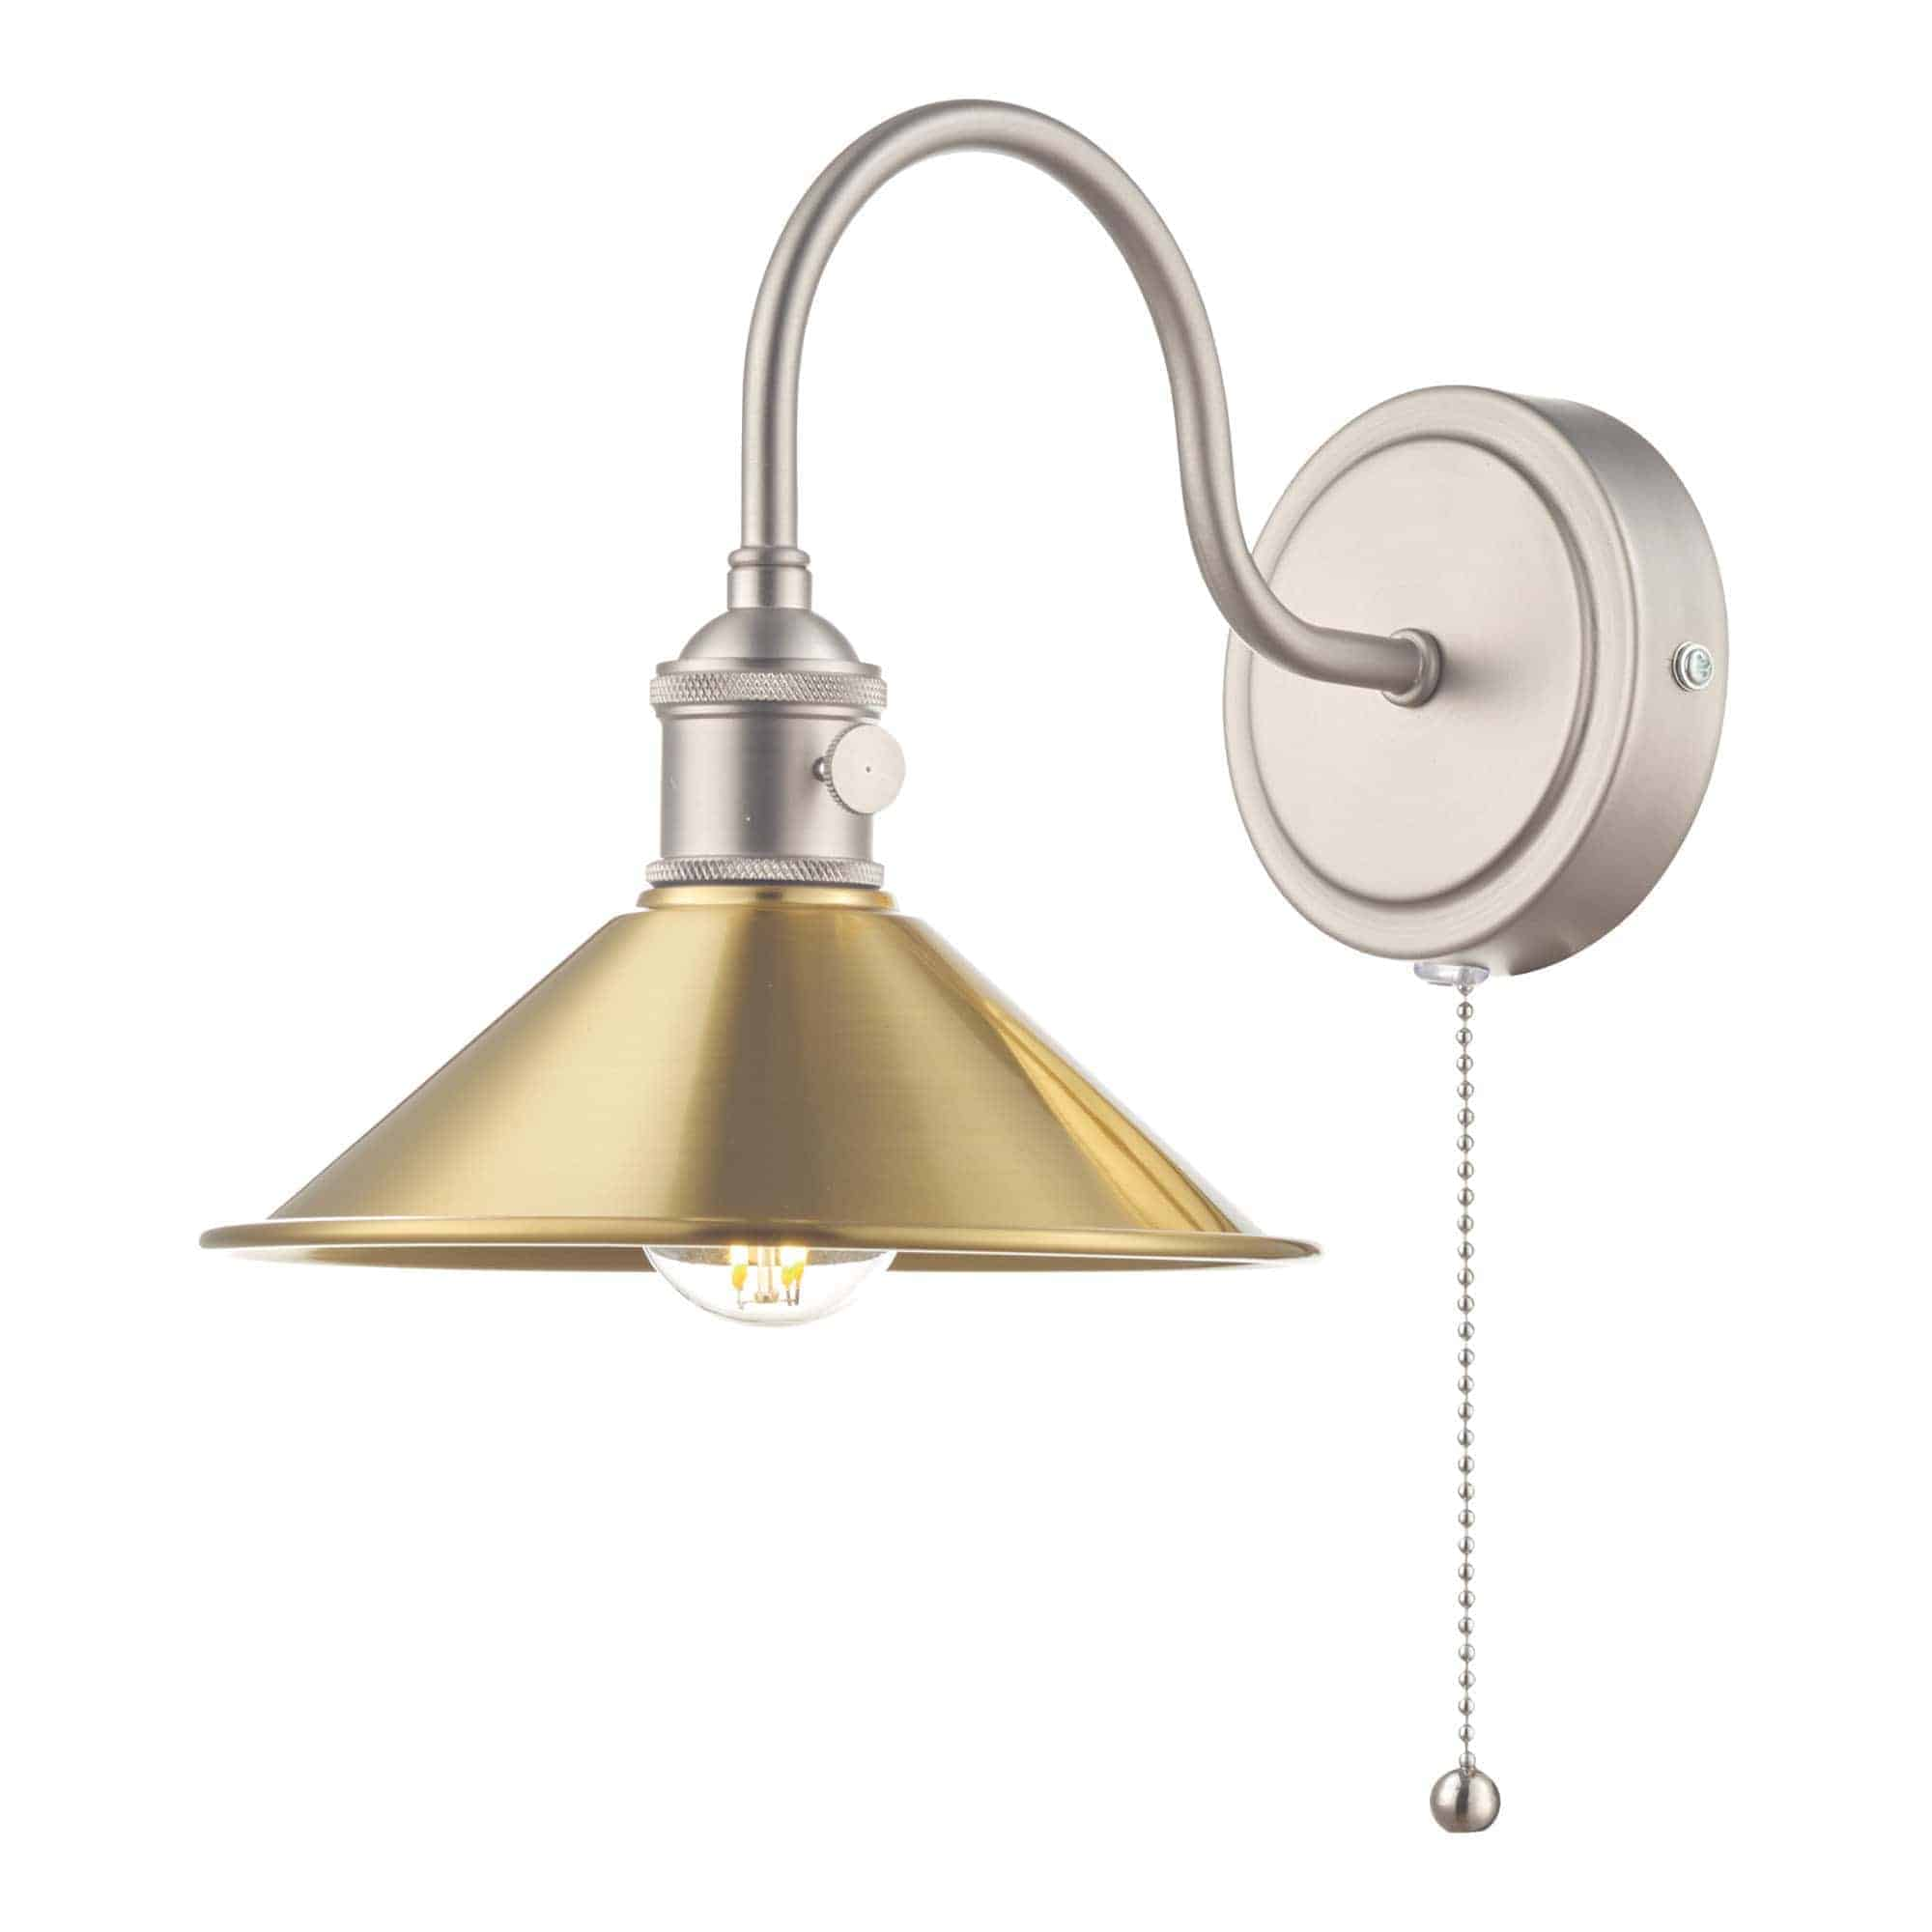 Dar HAD0761-01 Hadano 1 Light Wall Light Antique Chrome With Aged Brass Shade